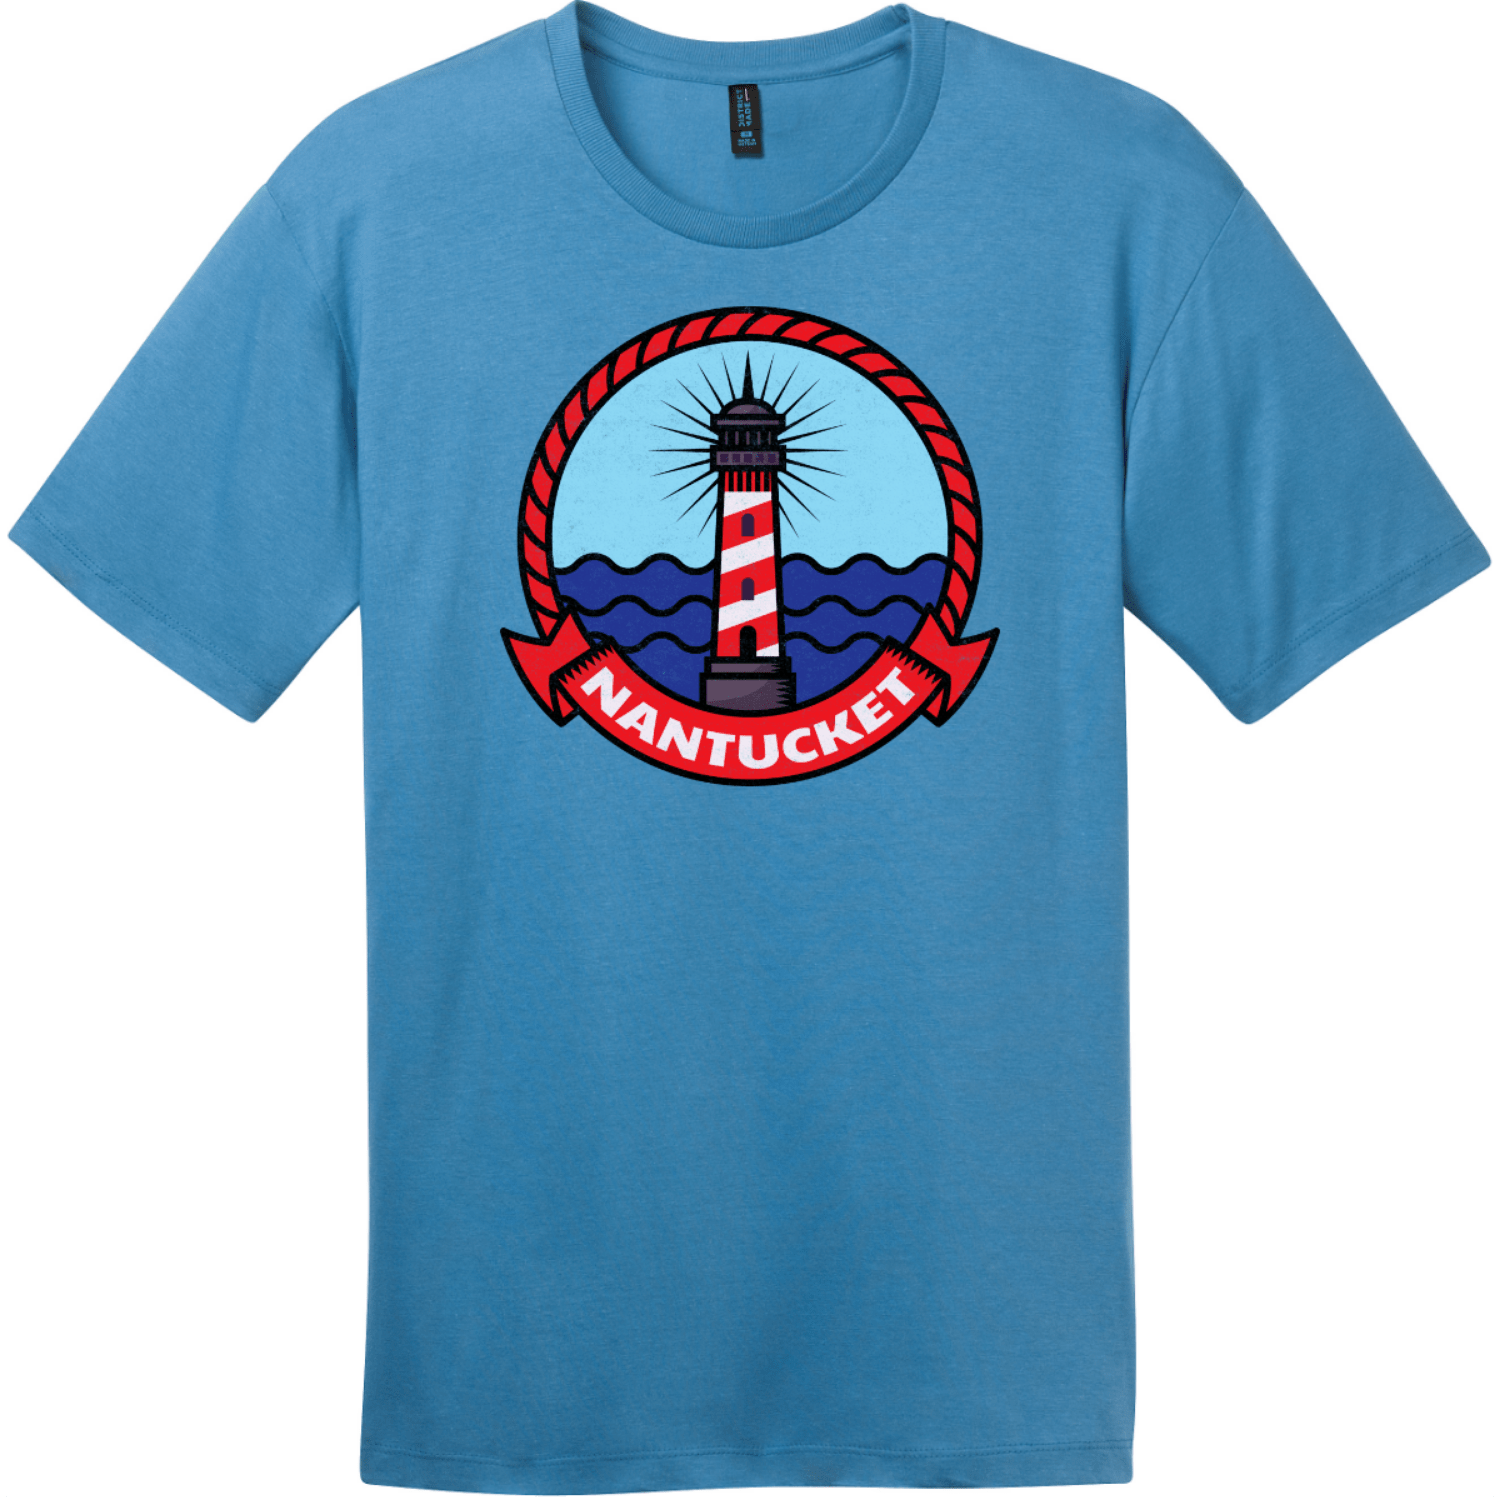 Nantucket Maine Lighthouse Distressed T-Shirt Clean Denim District Perfect Weight Tee DT104